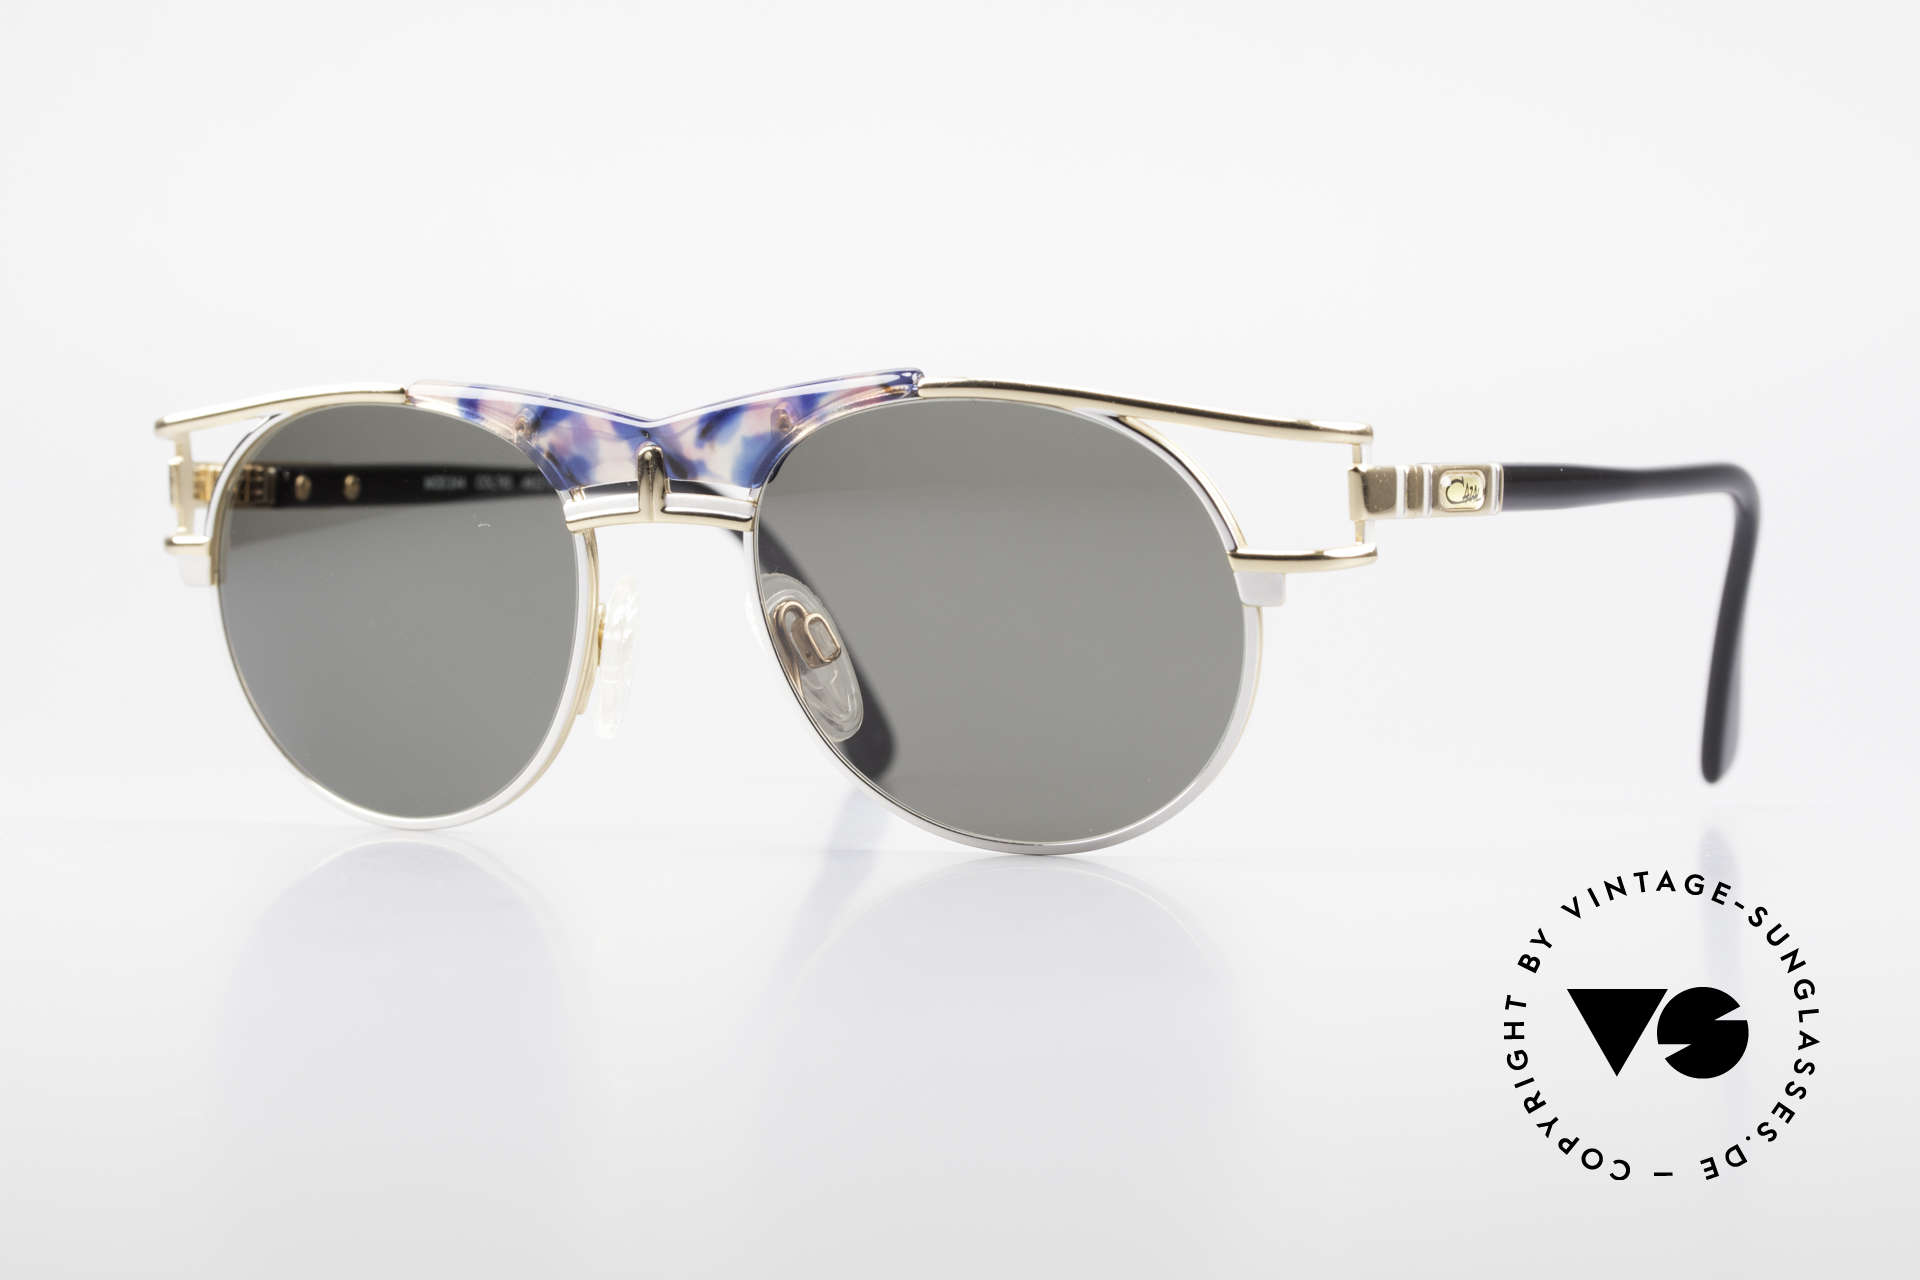 Cazal 244 Iconic Vintage Sunglasses 90's, elegant Cazal designer shades of the early 90's, Made for Men and Women